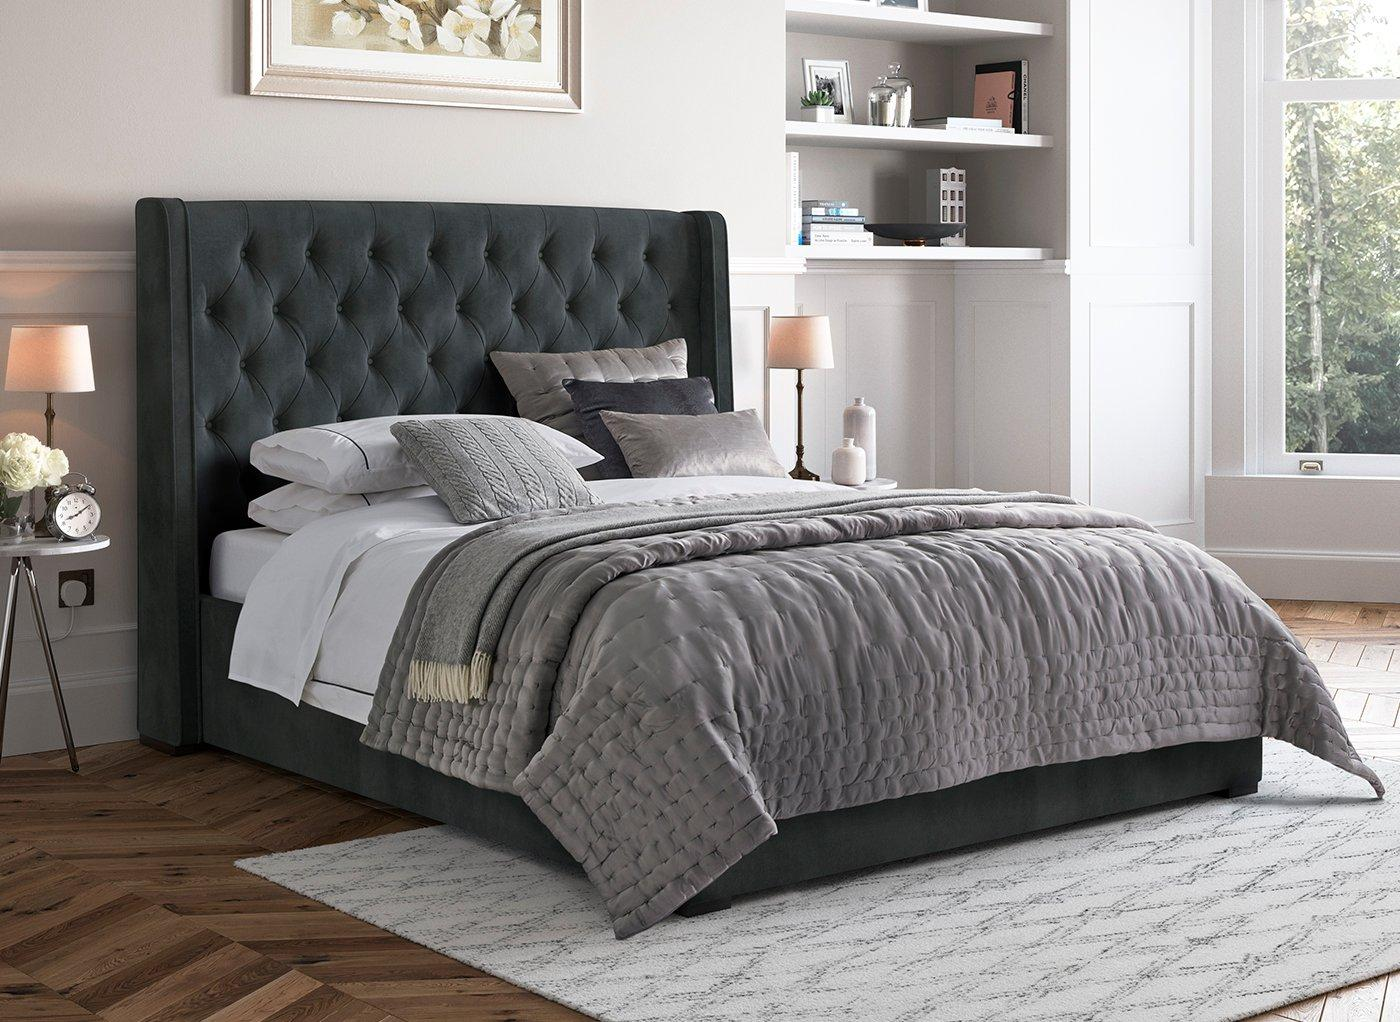 Deacon Upholstered Bed Frame 6'0 Super king GREY